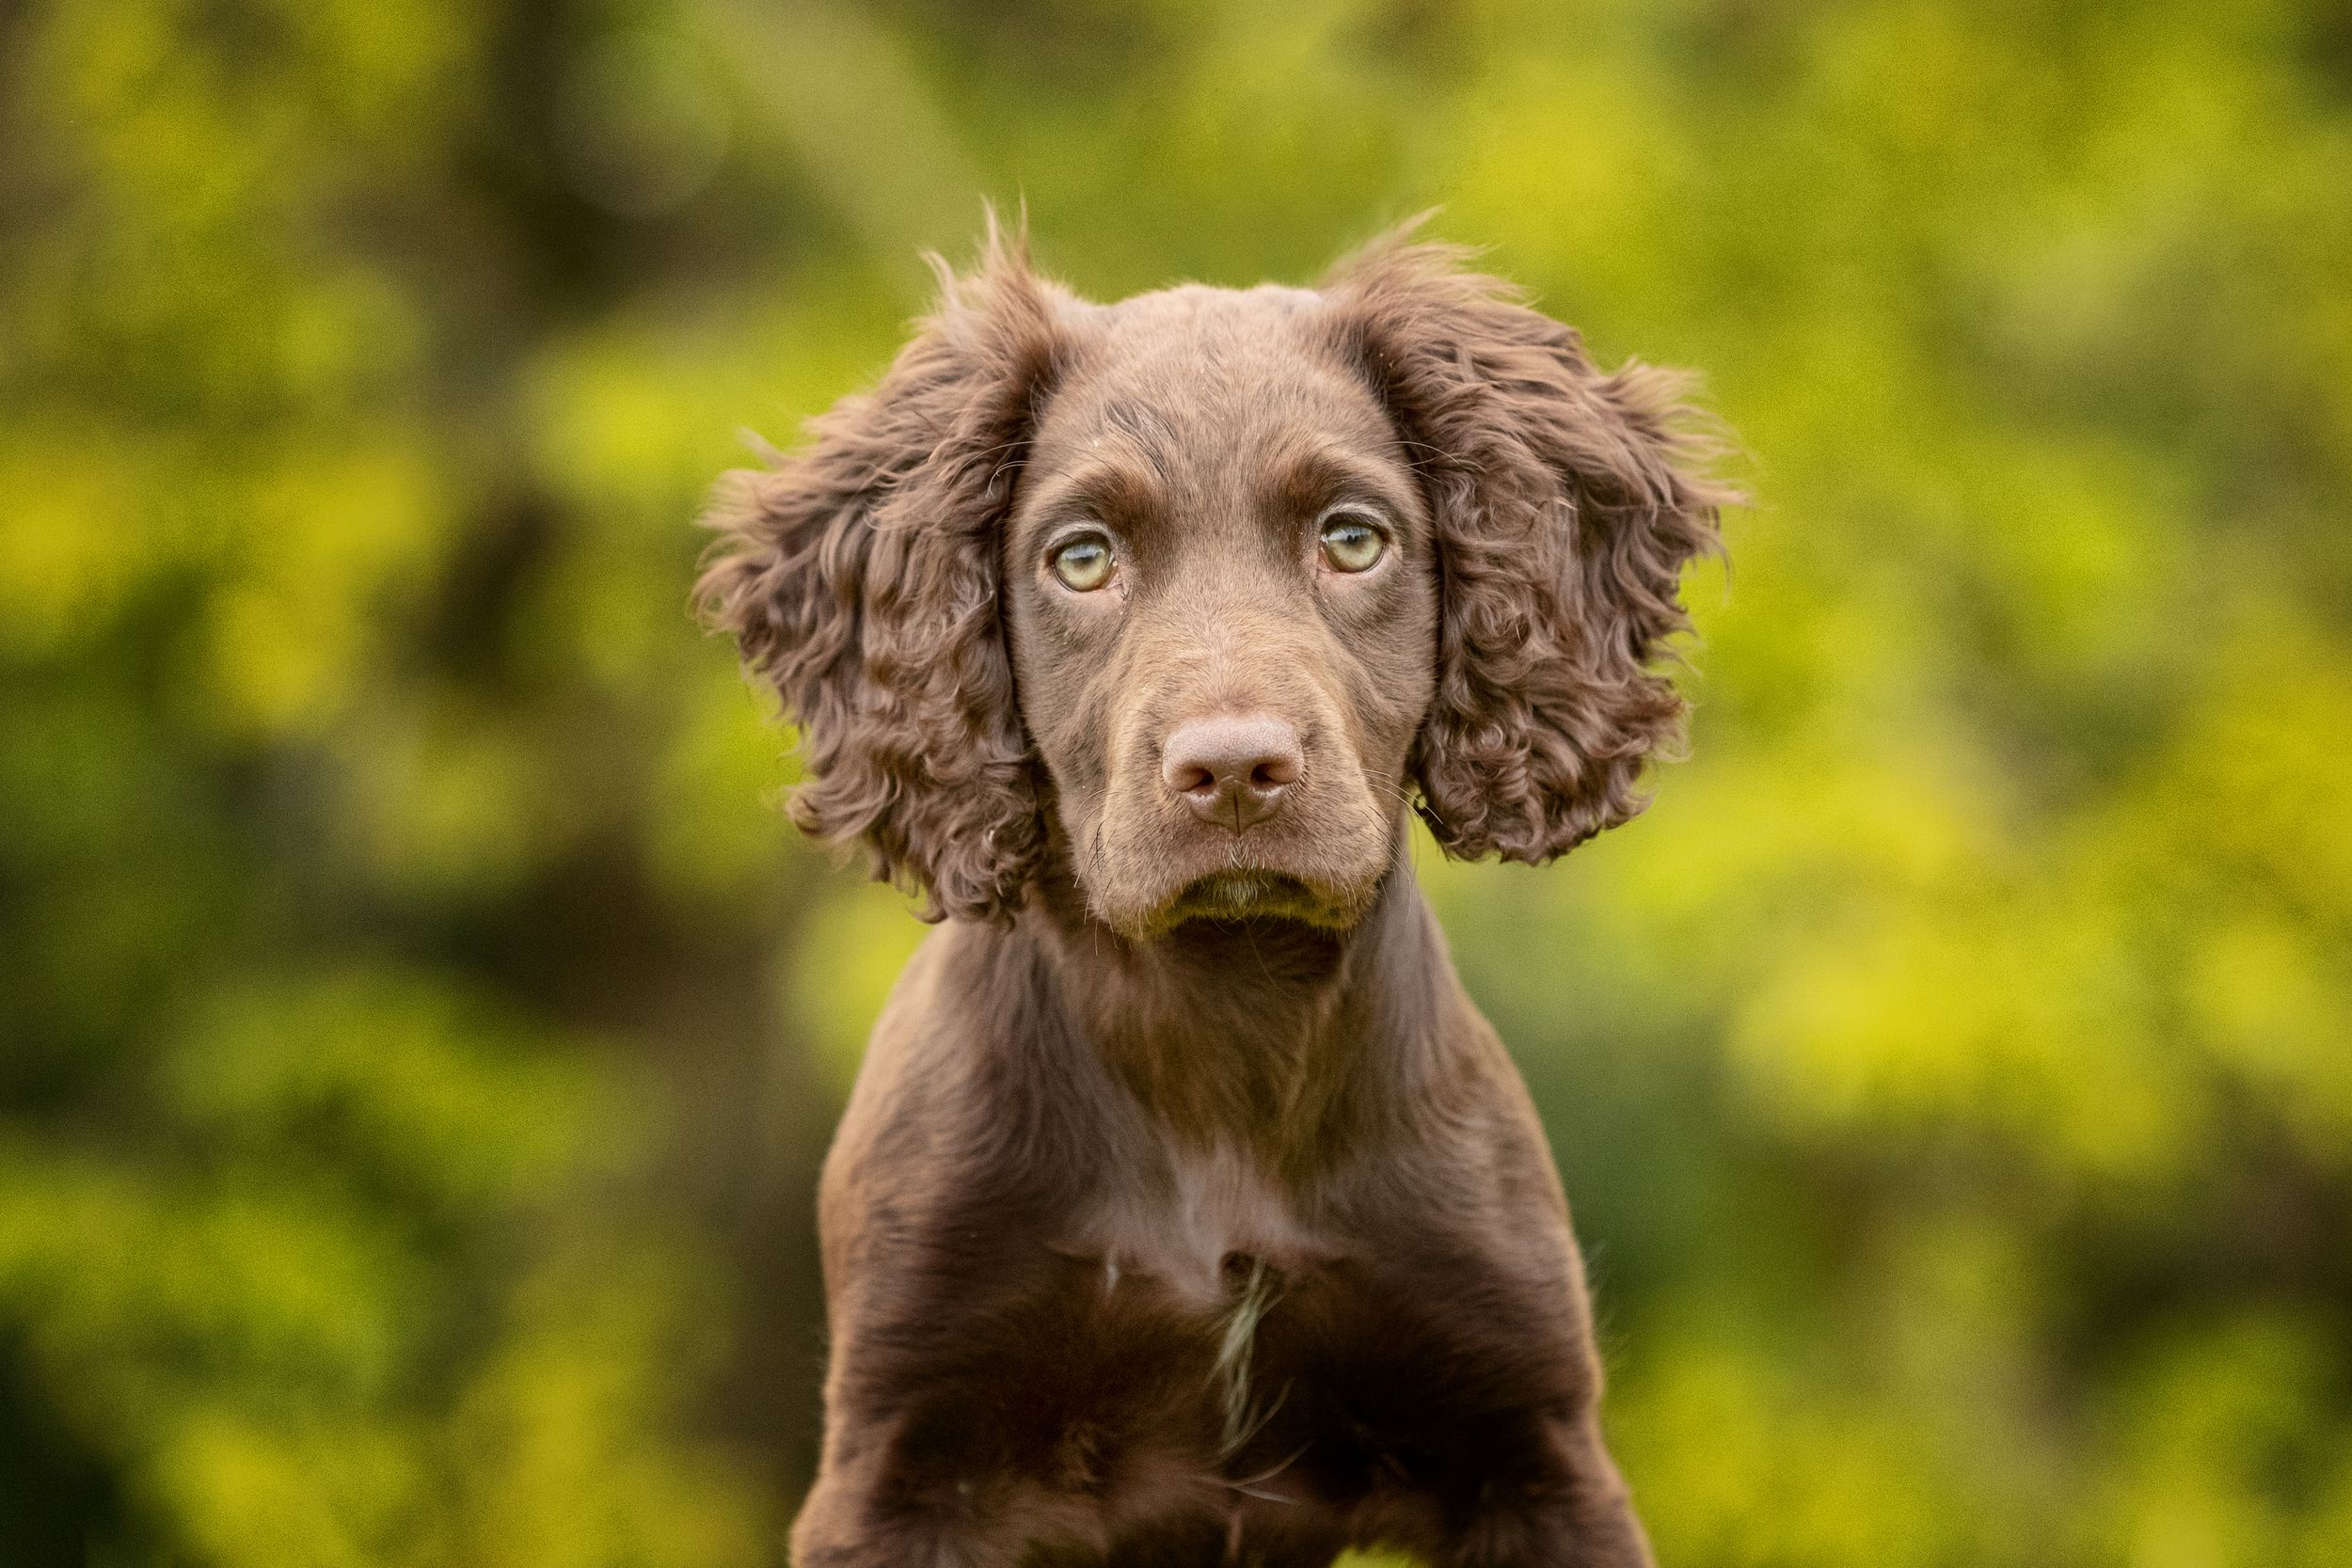 spaniel puppy looking directly at camera